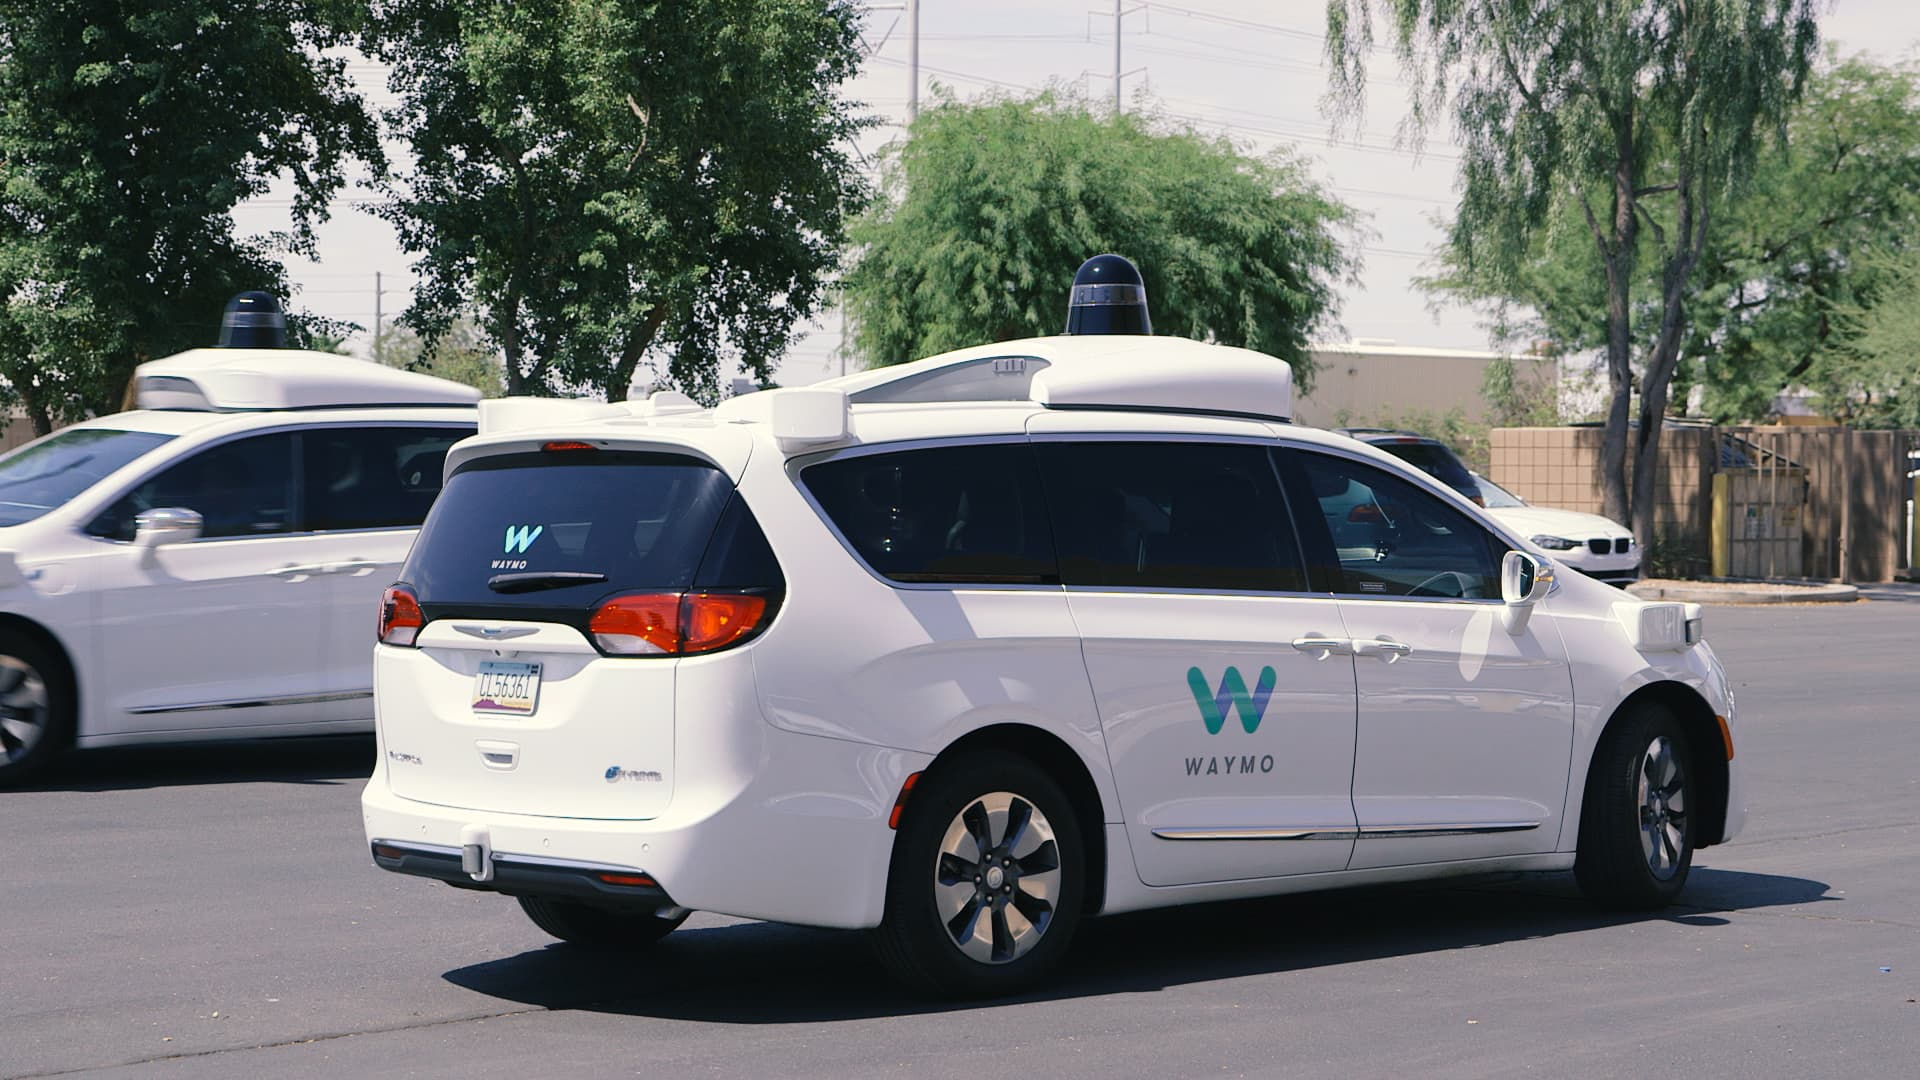 Waymo valuation cut 40% by Morgan Stanley to $105 billion amid challenges in self-driving car market